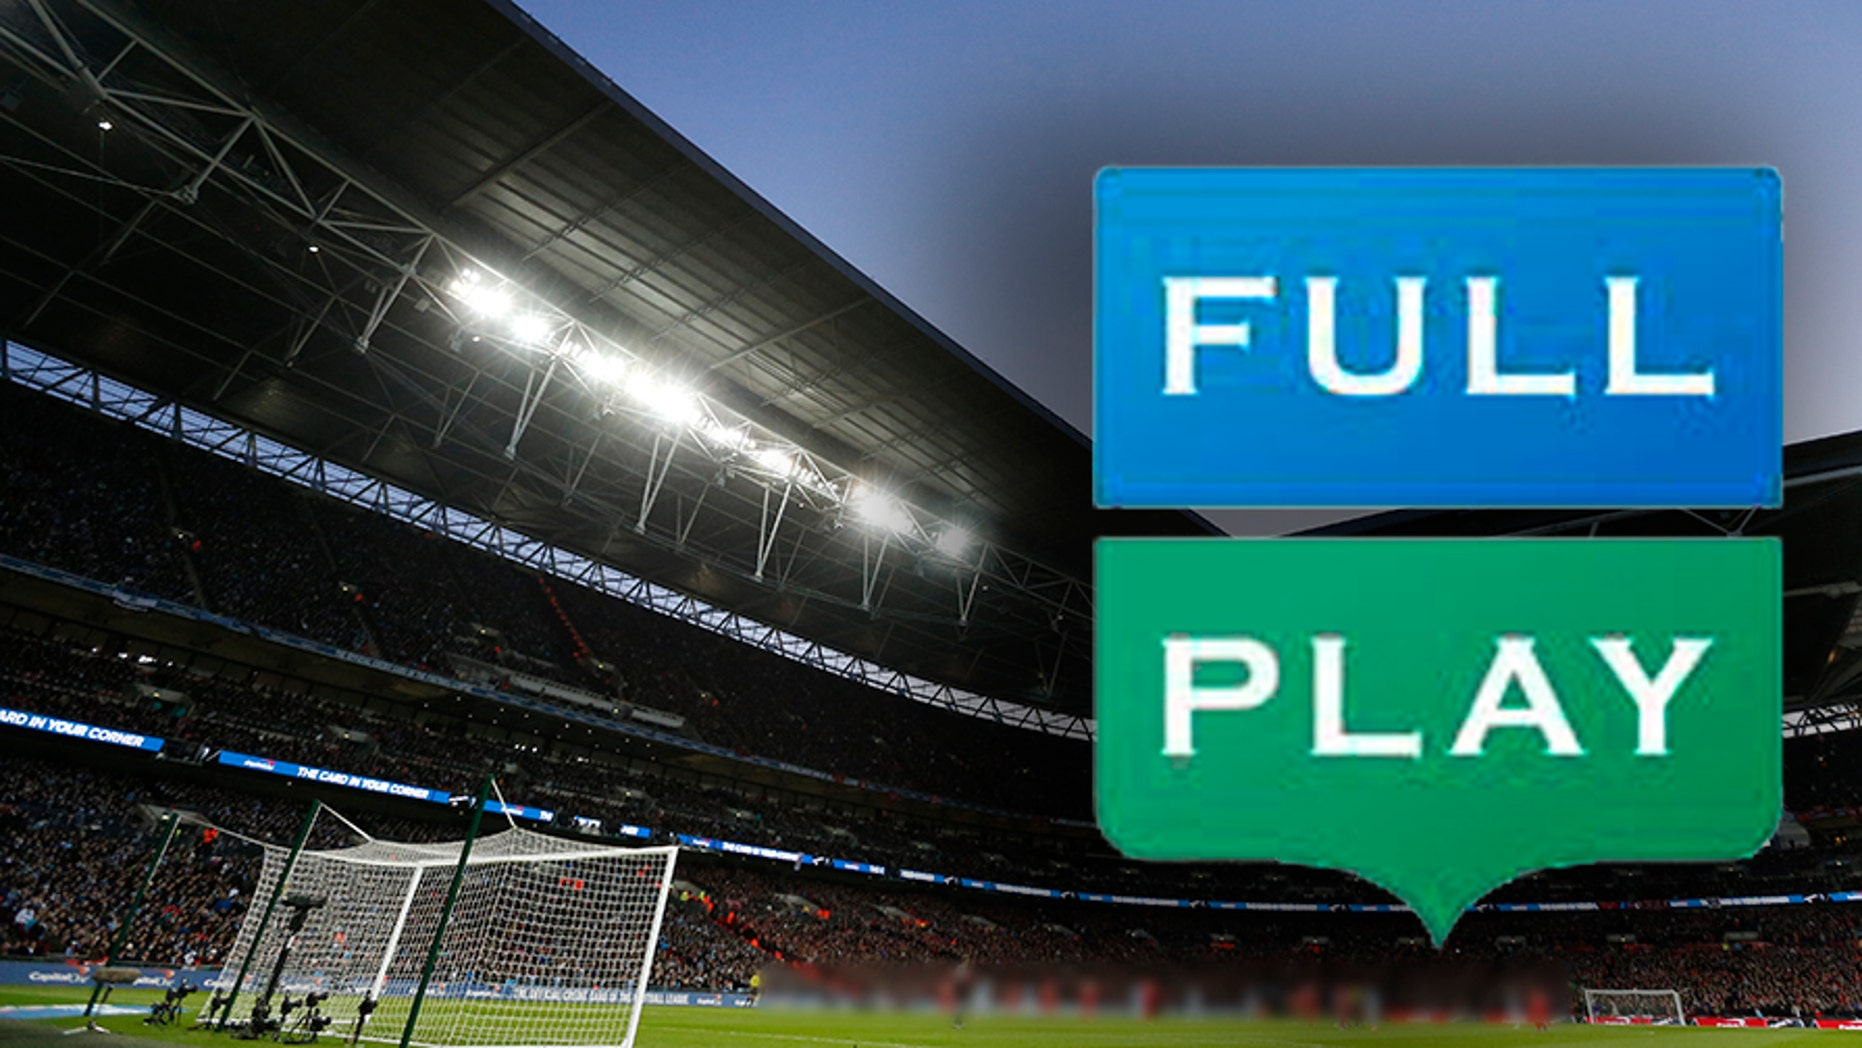 Three high-ranking soccer executives associated with Full Play Group, a company based in Argentina that won marketing rights to South American World Cup qualifiers and the Copa America and Copa Libertatores tournaments, are on trial for secret payments to soccer officials, which were cloaked by car names.